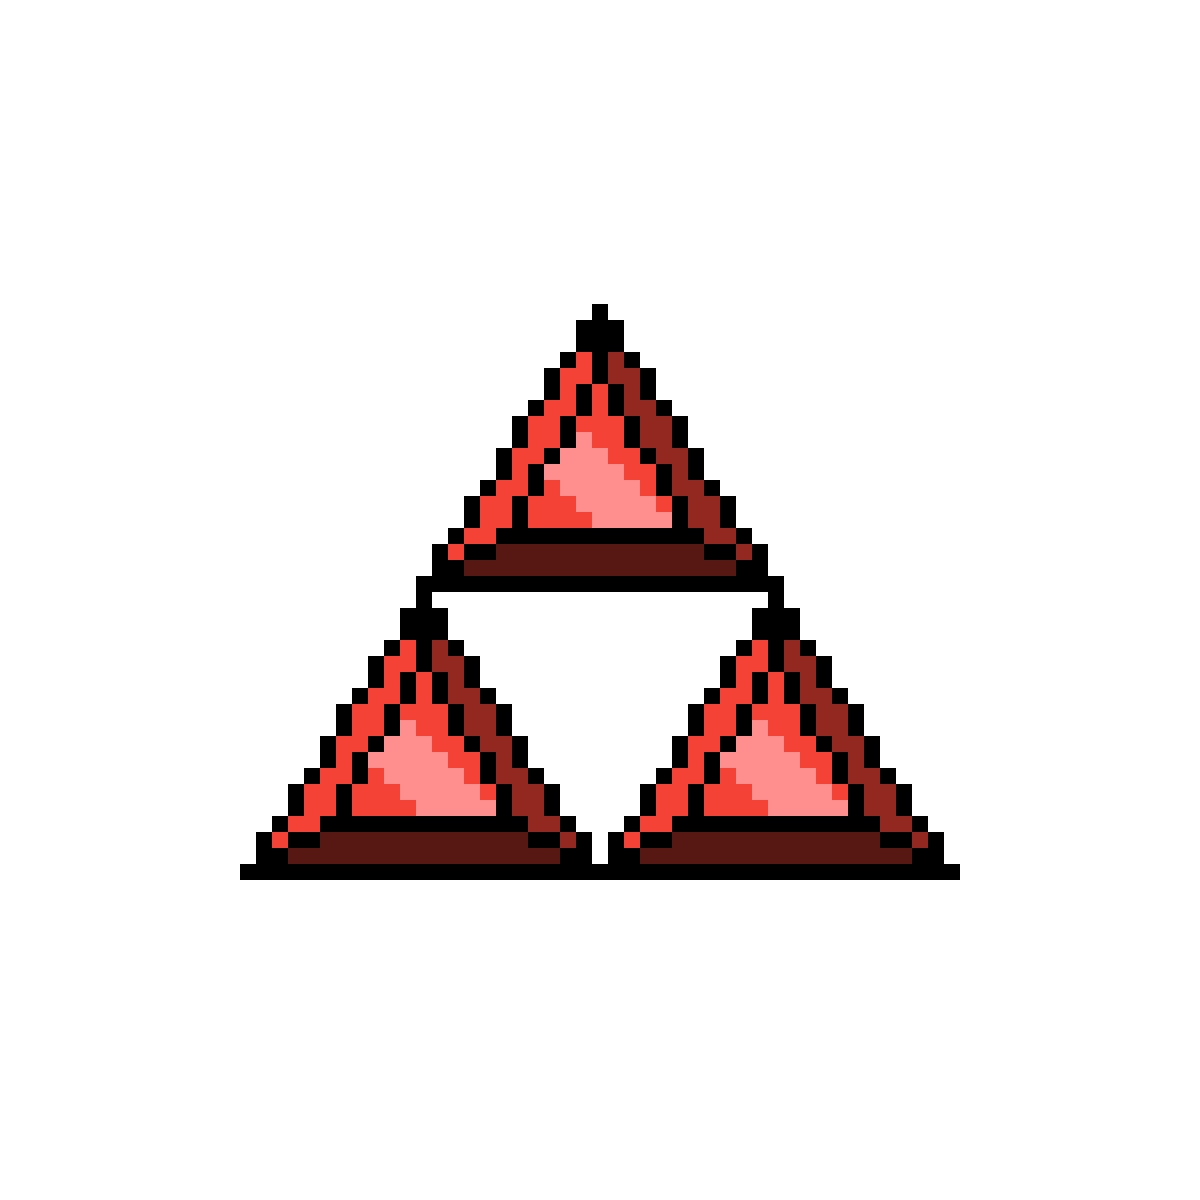 Triforce drawing crystal. Pixilart red by zwatcher